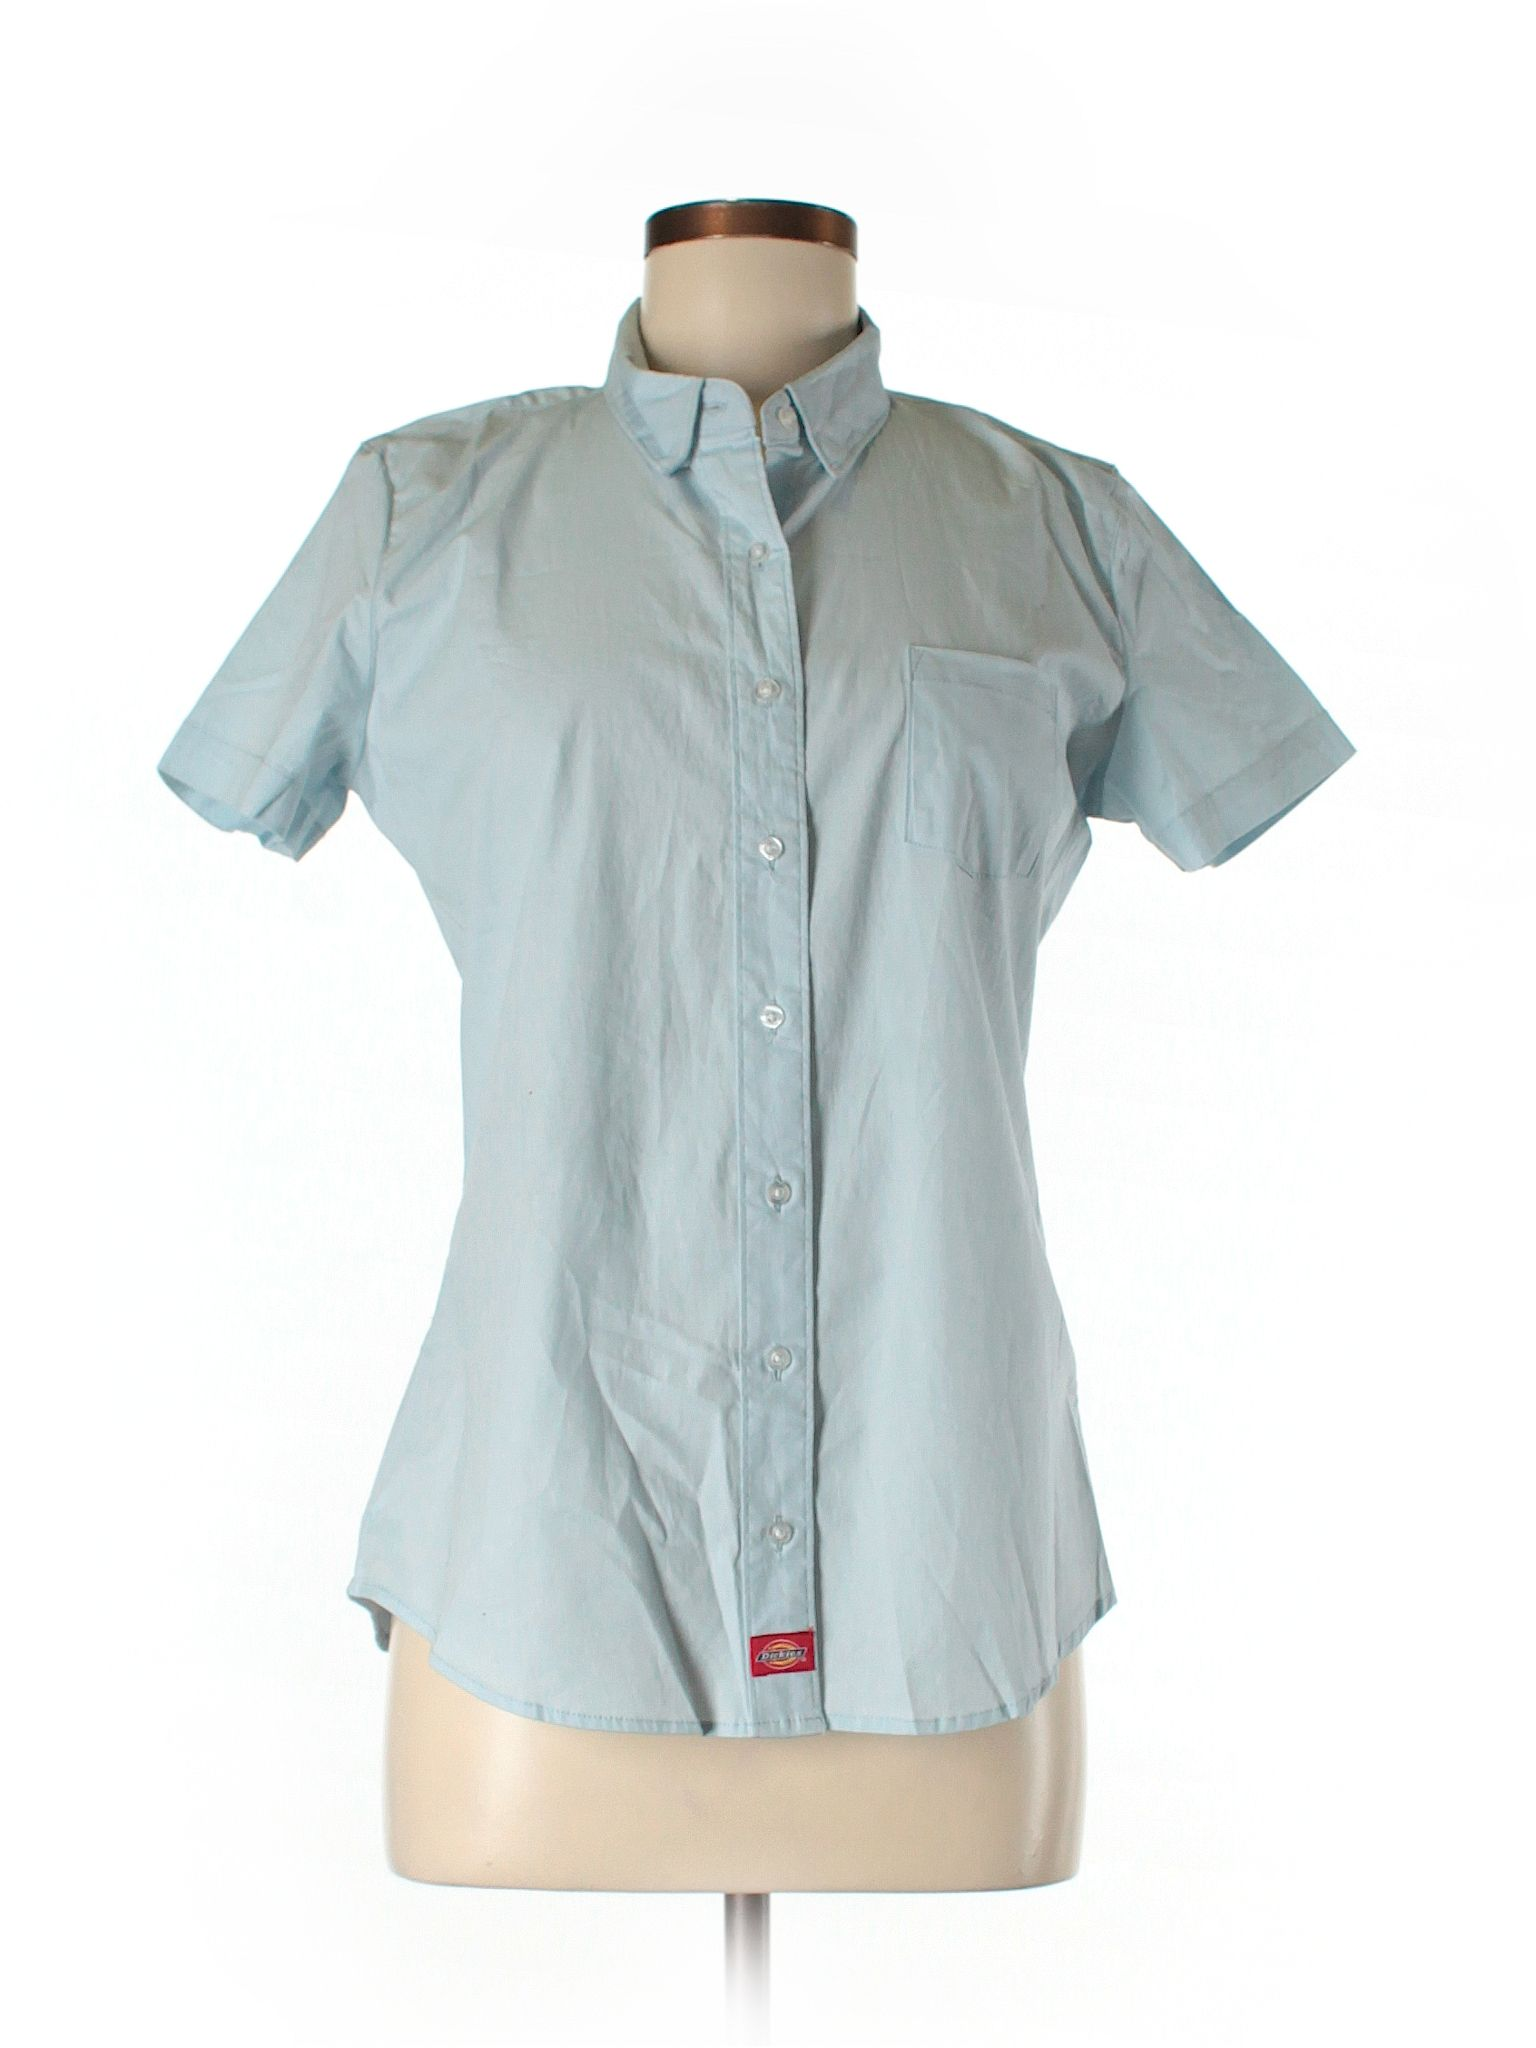 ed4cacd2 Dickies Short Sleeve Button Down Shirt: Size 12.00 Light Blue Women's Tops  - New With Tags - $11.99